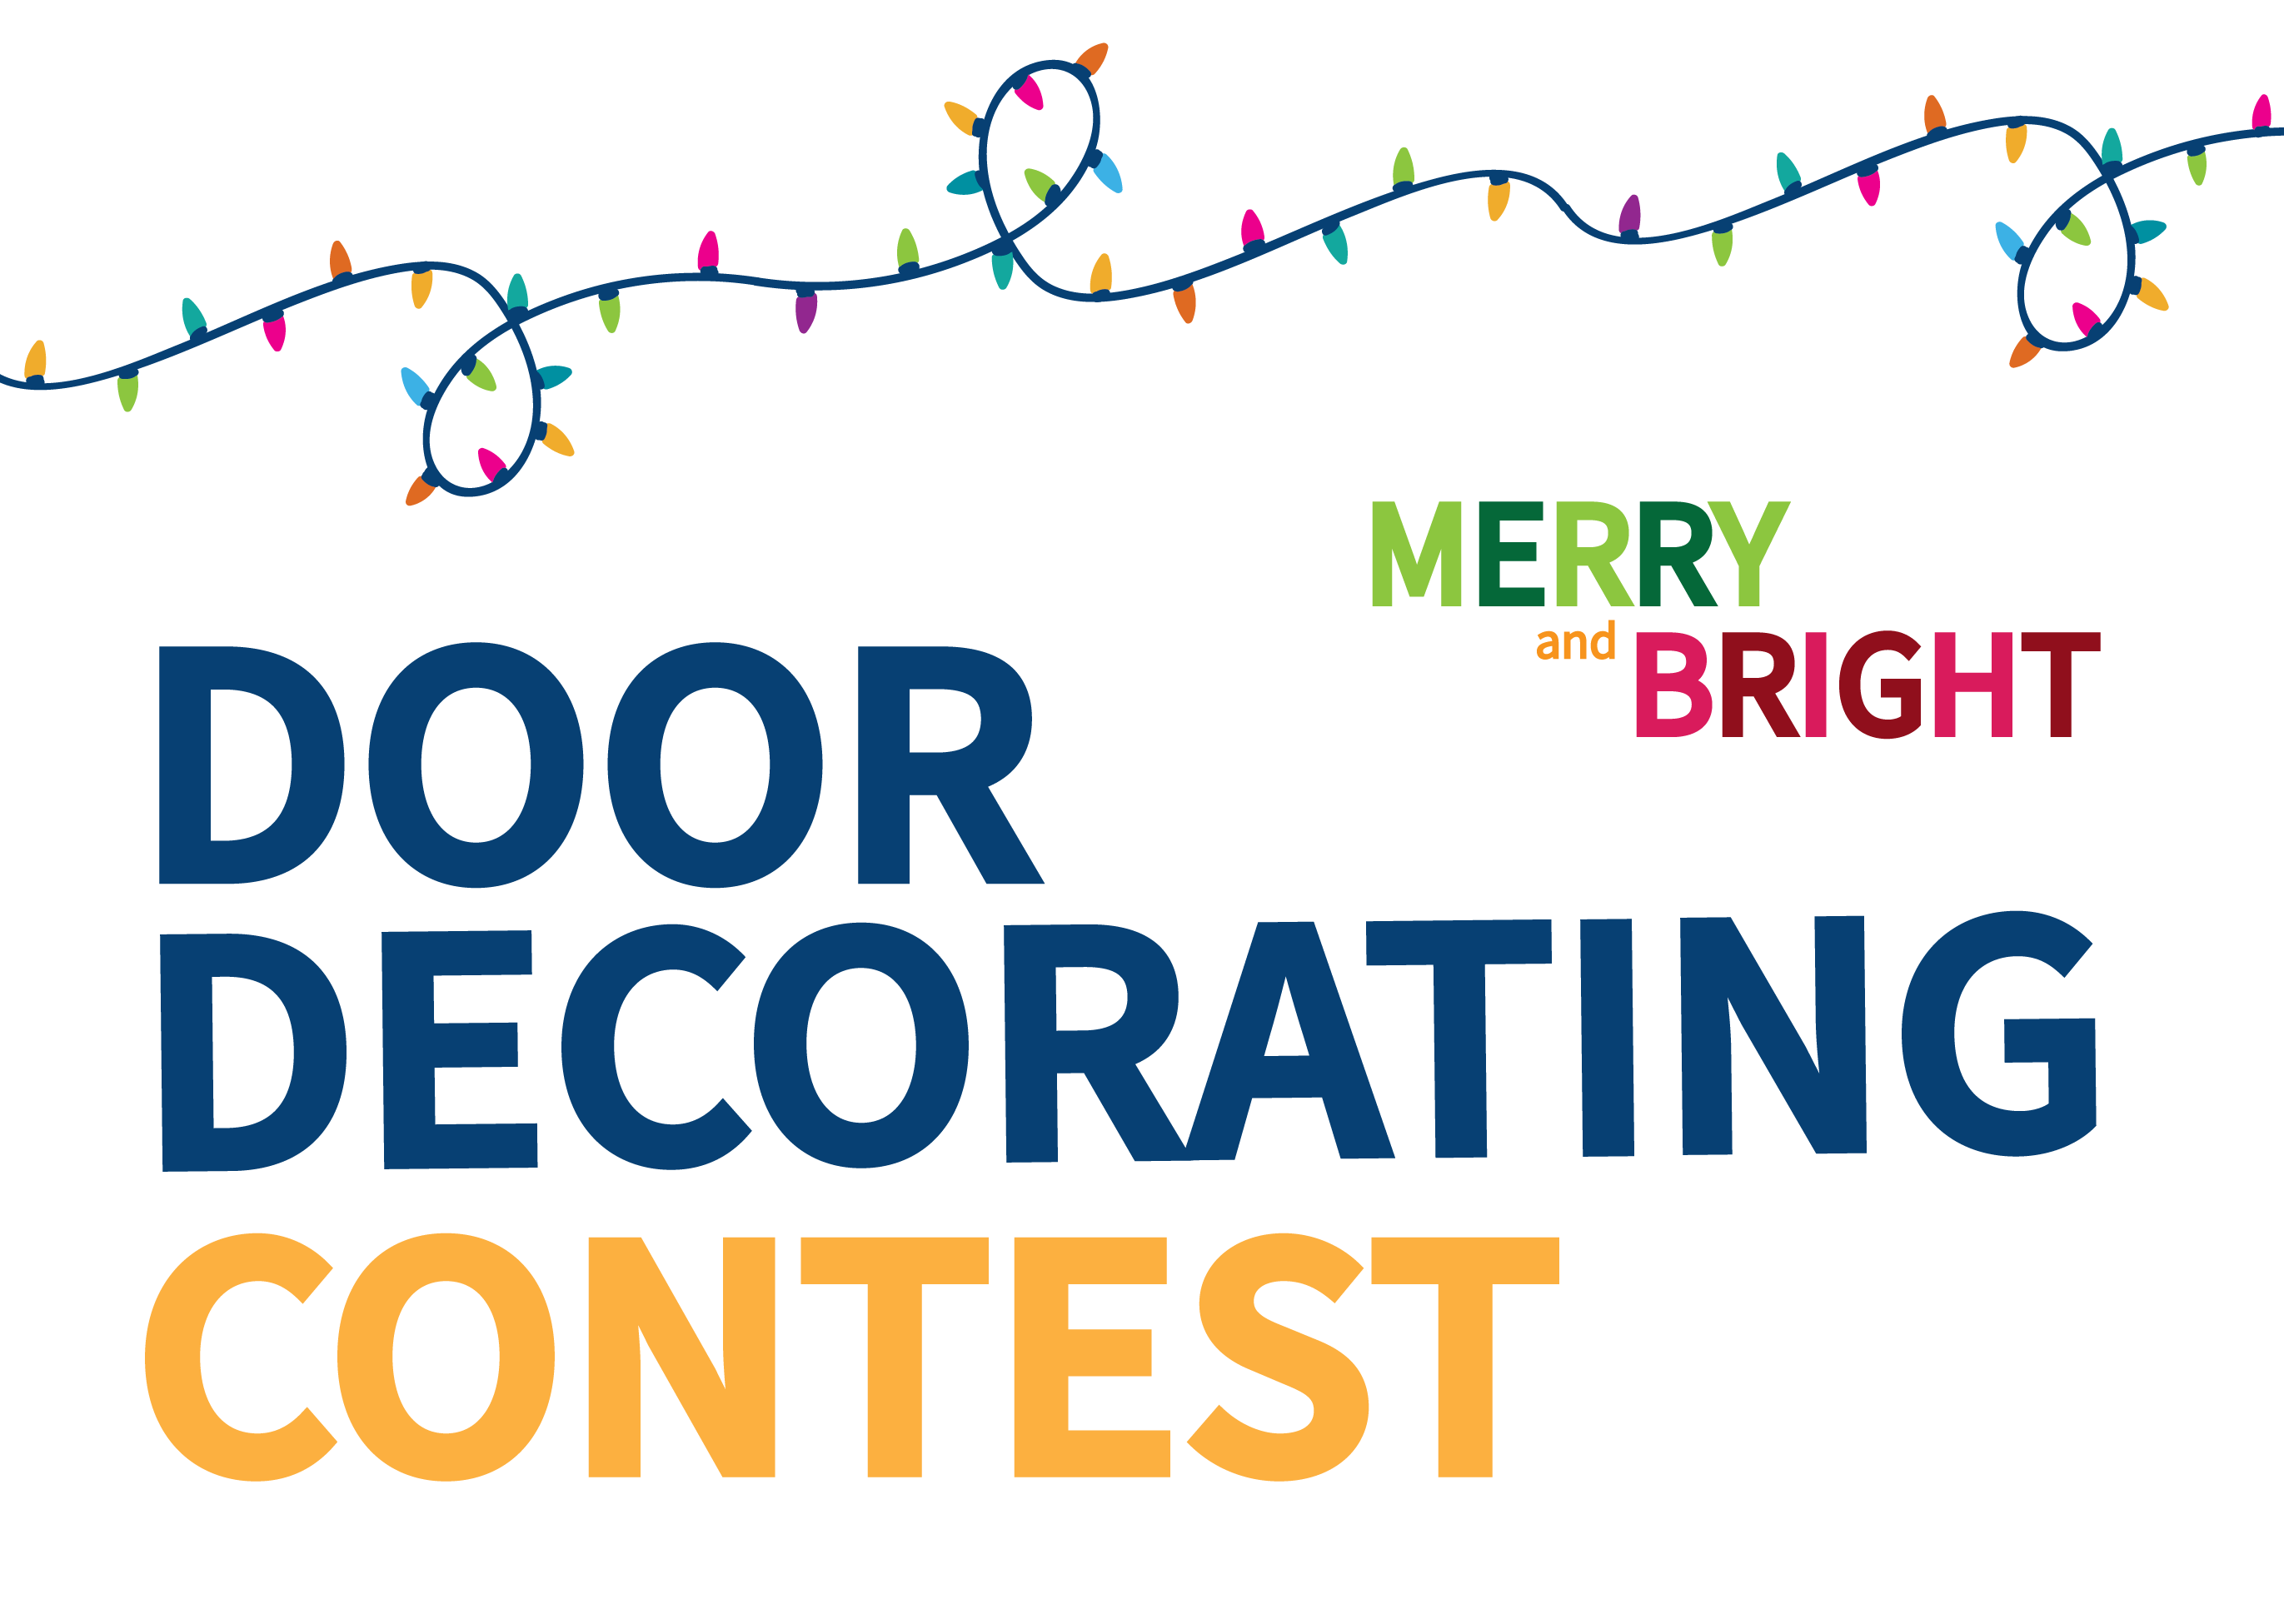 Door Decorating Contest Icon